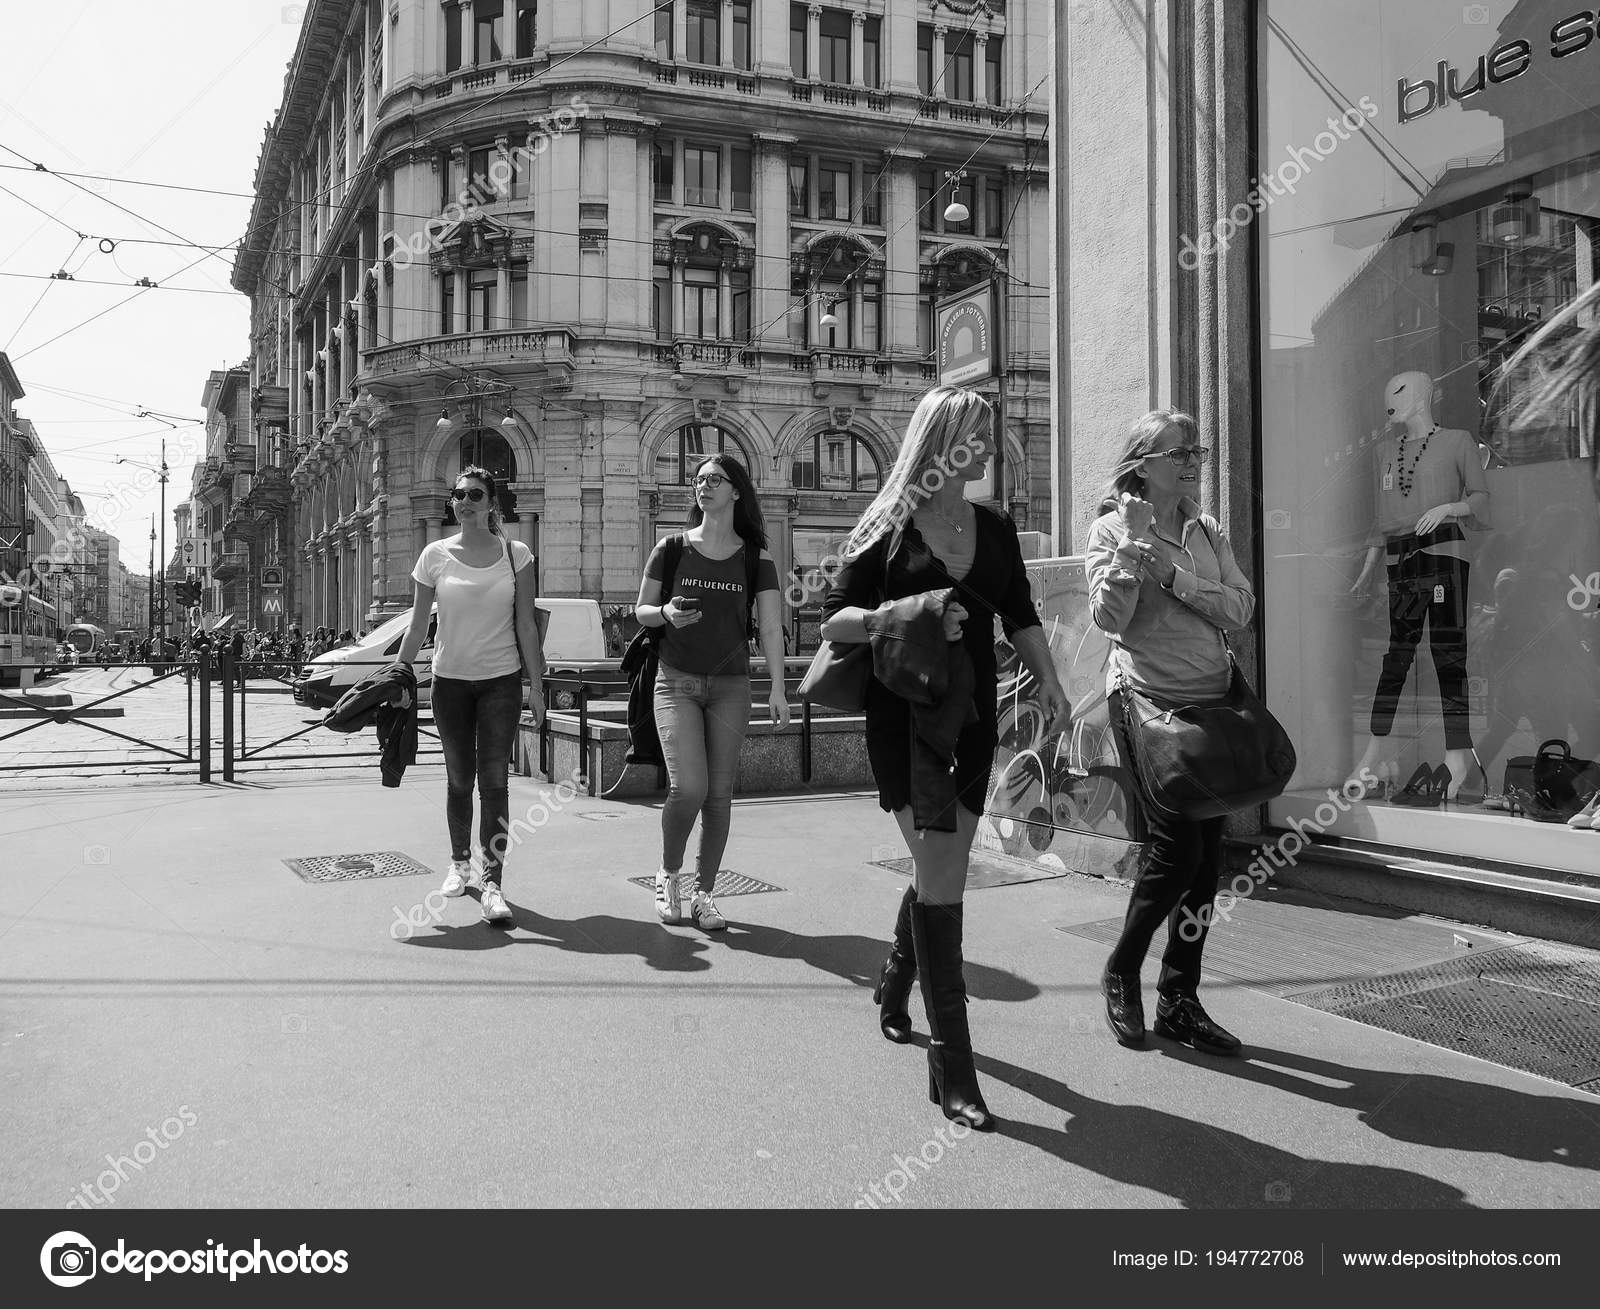 Milan italy circa april 2018 women walking in the city centre in black and white photo by